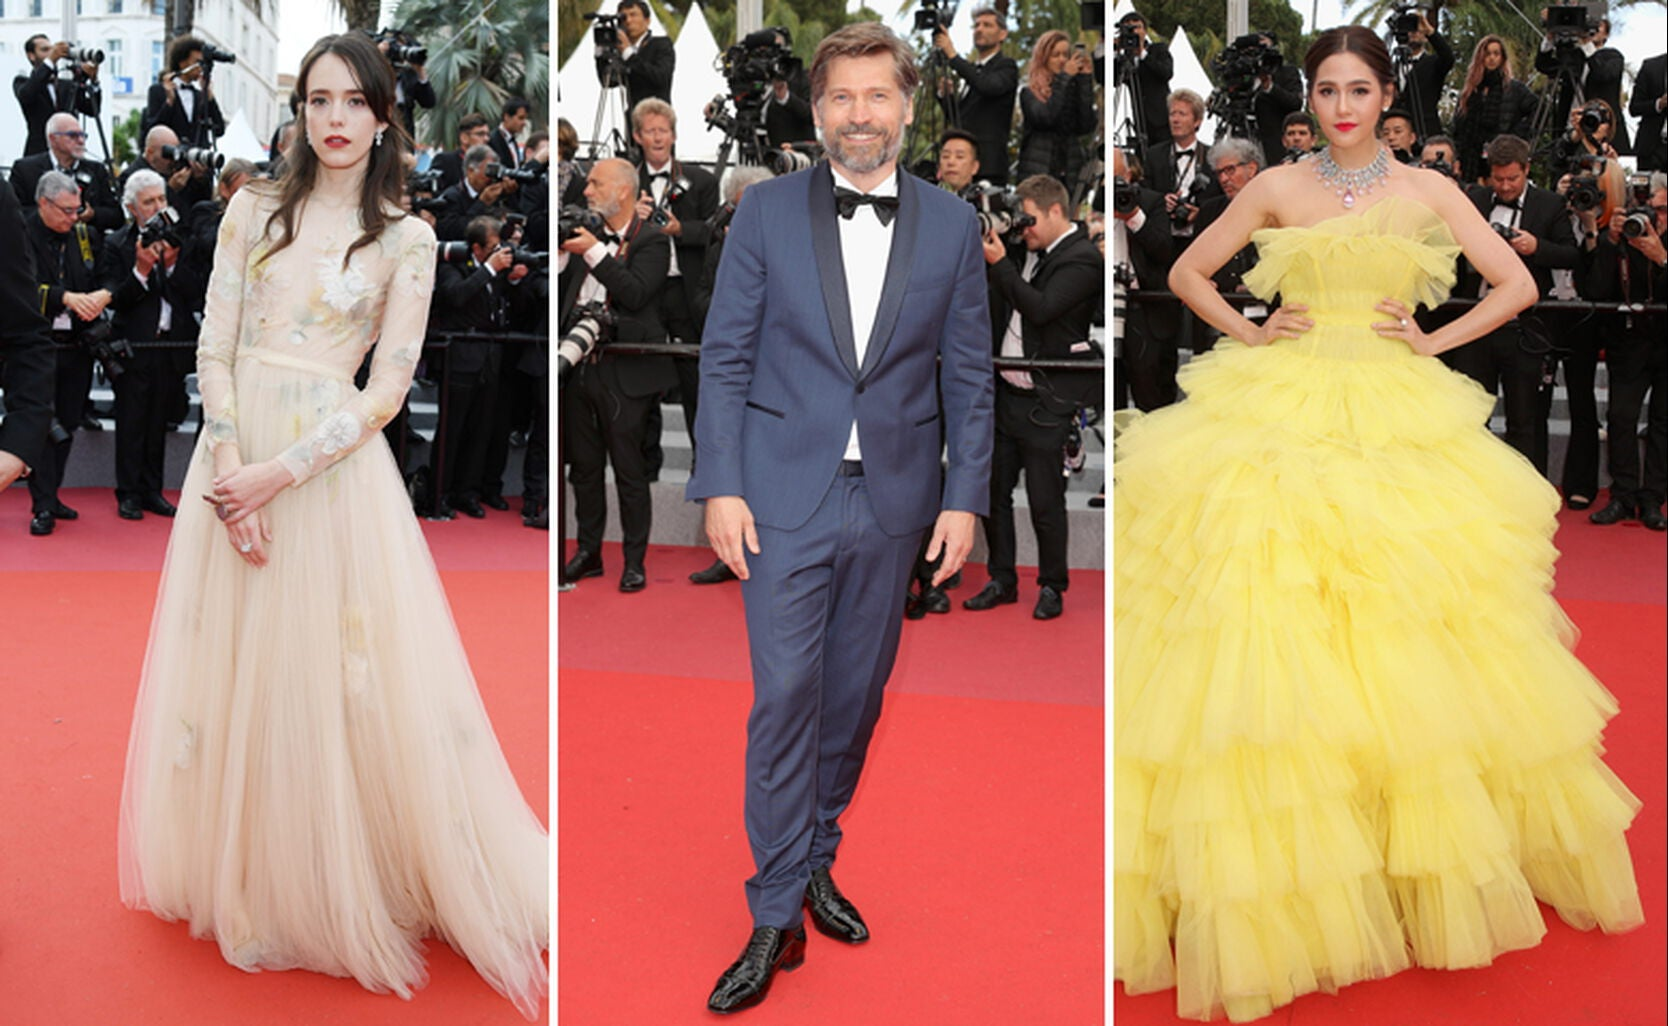 Stacy Martin, Nikolas Coster-Waldau and Araya Hargate